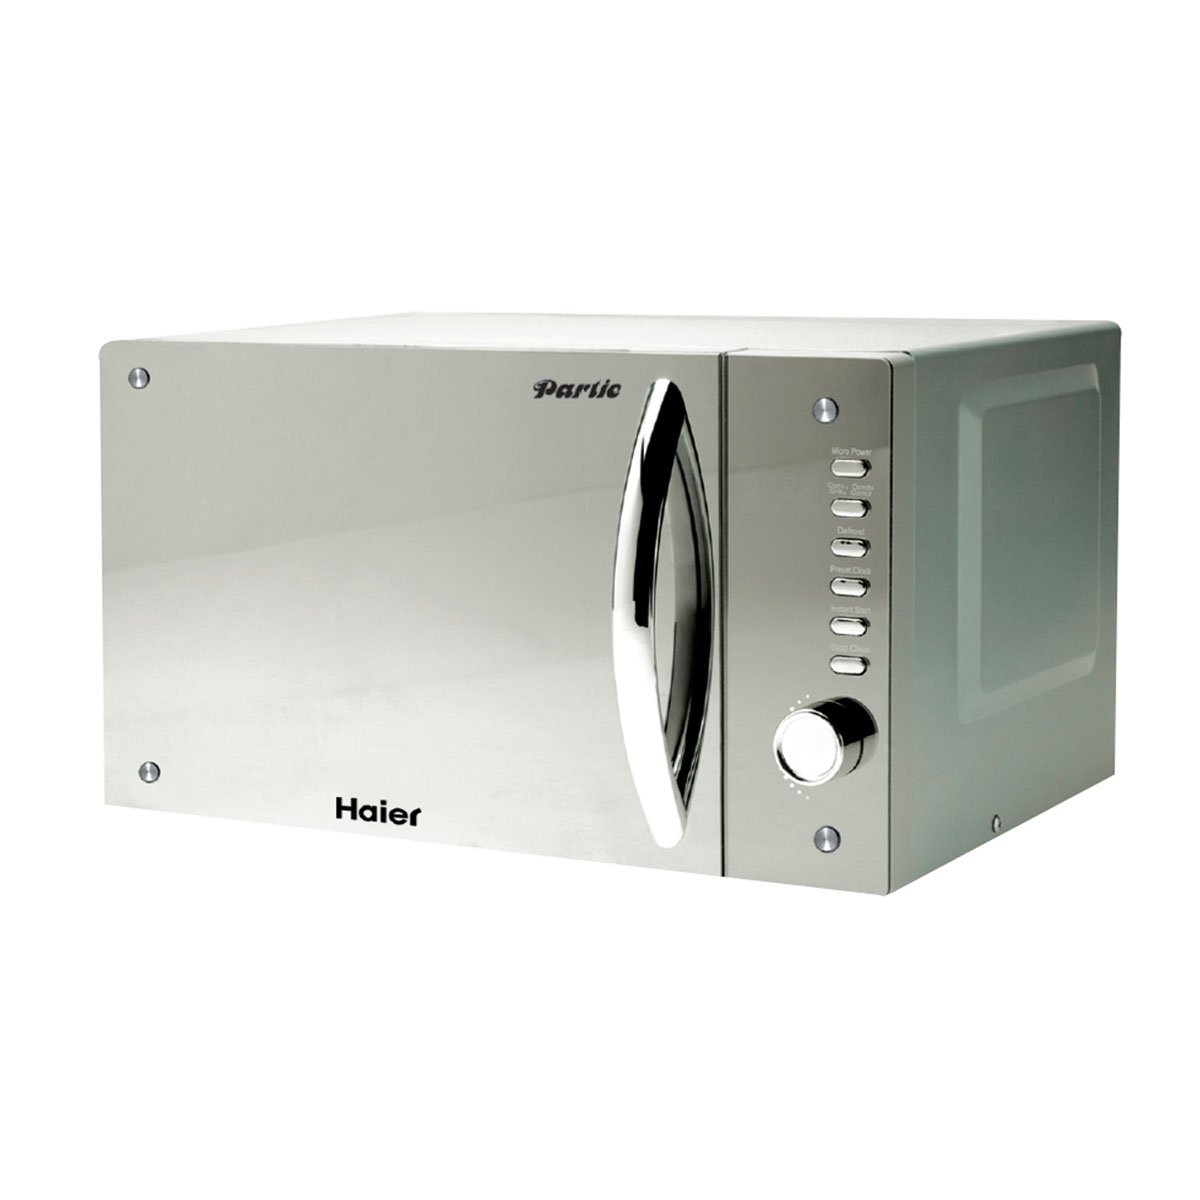 Haier Convection Microwave Oven 2080 Egc Image